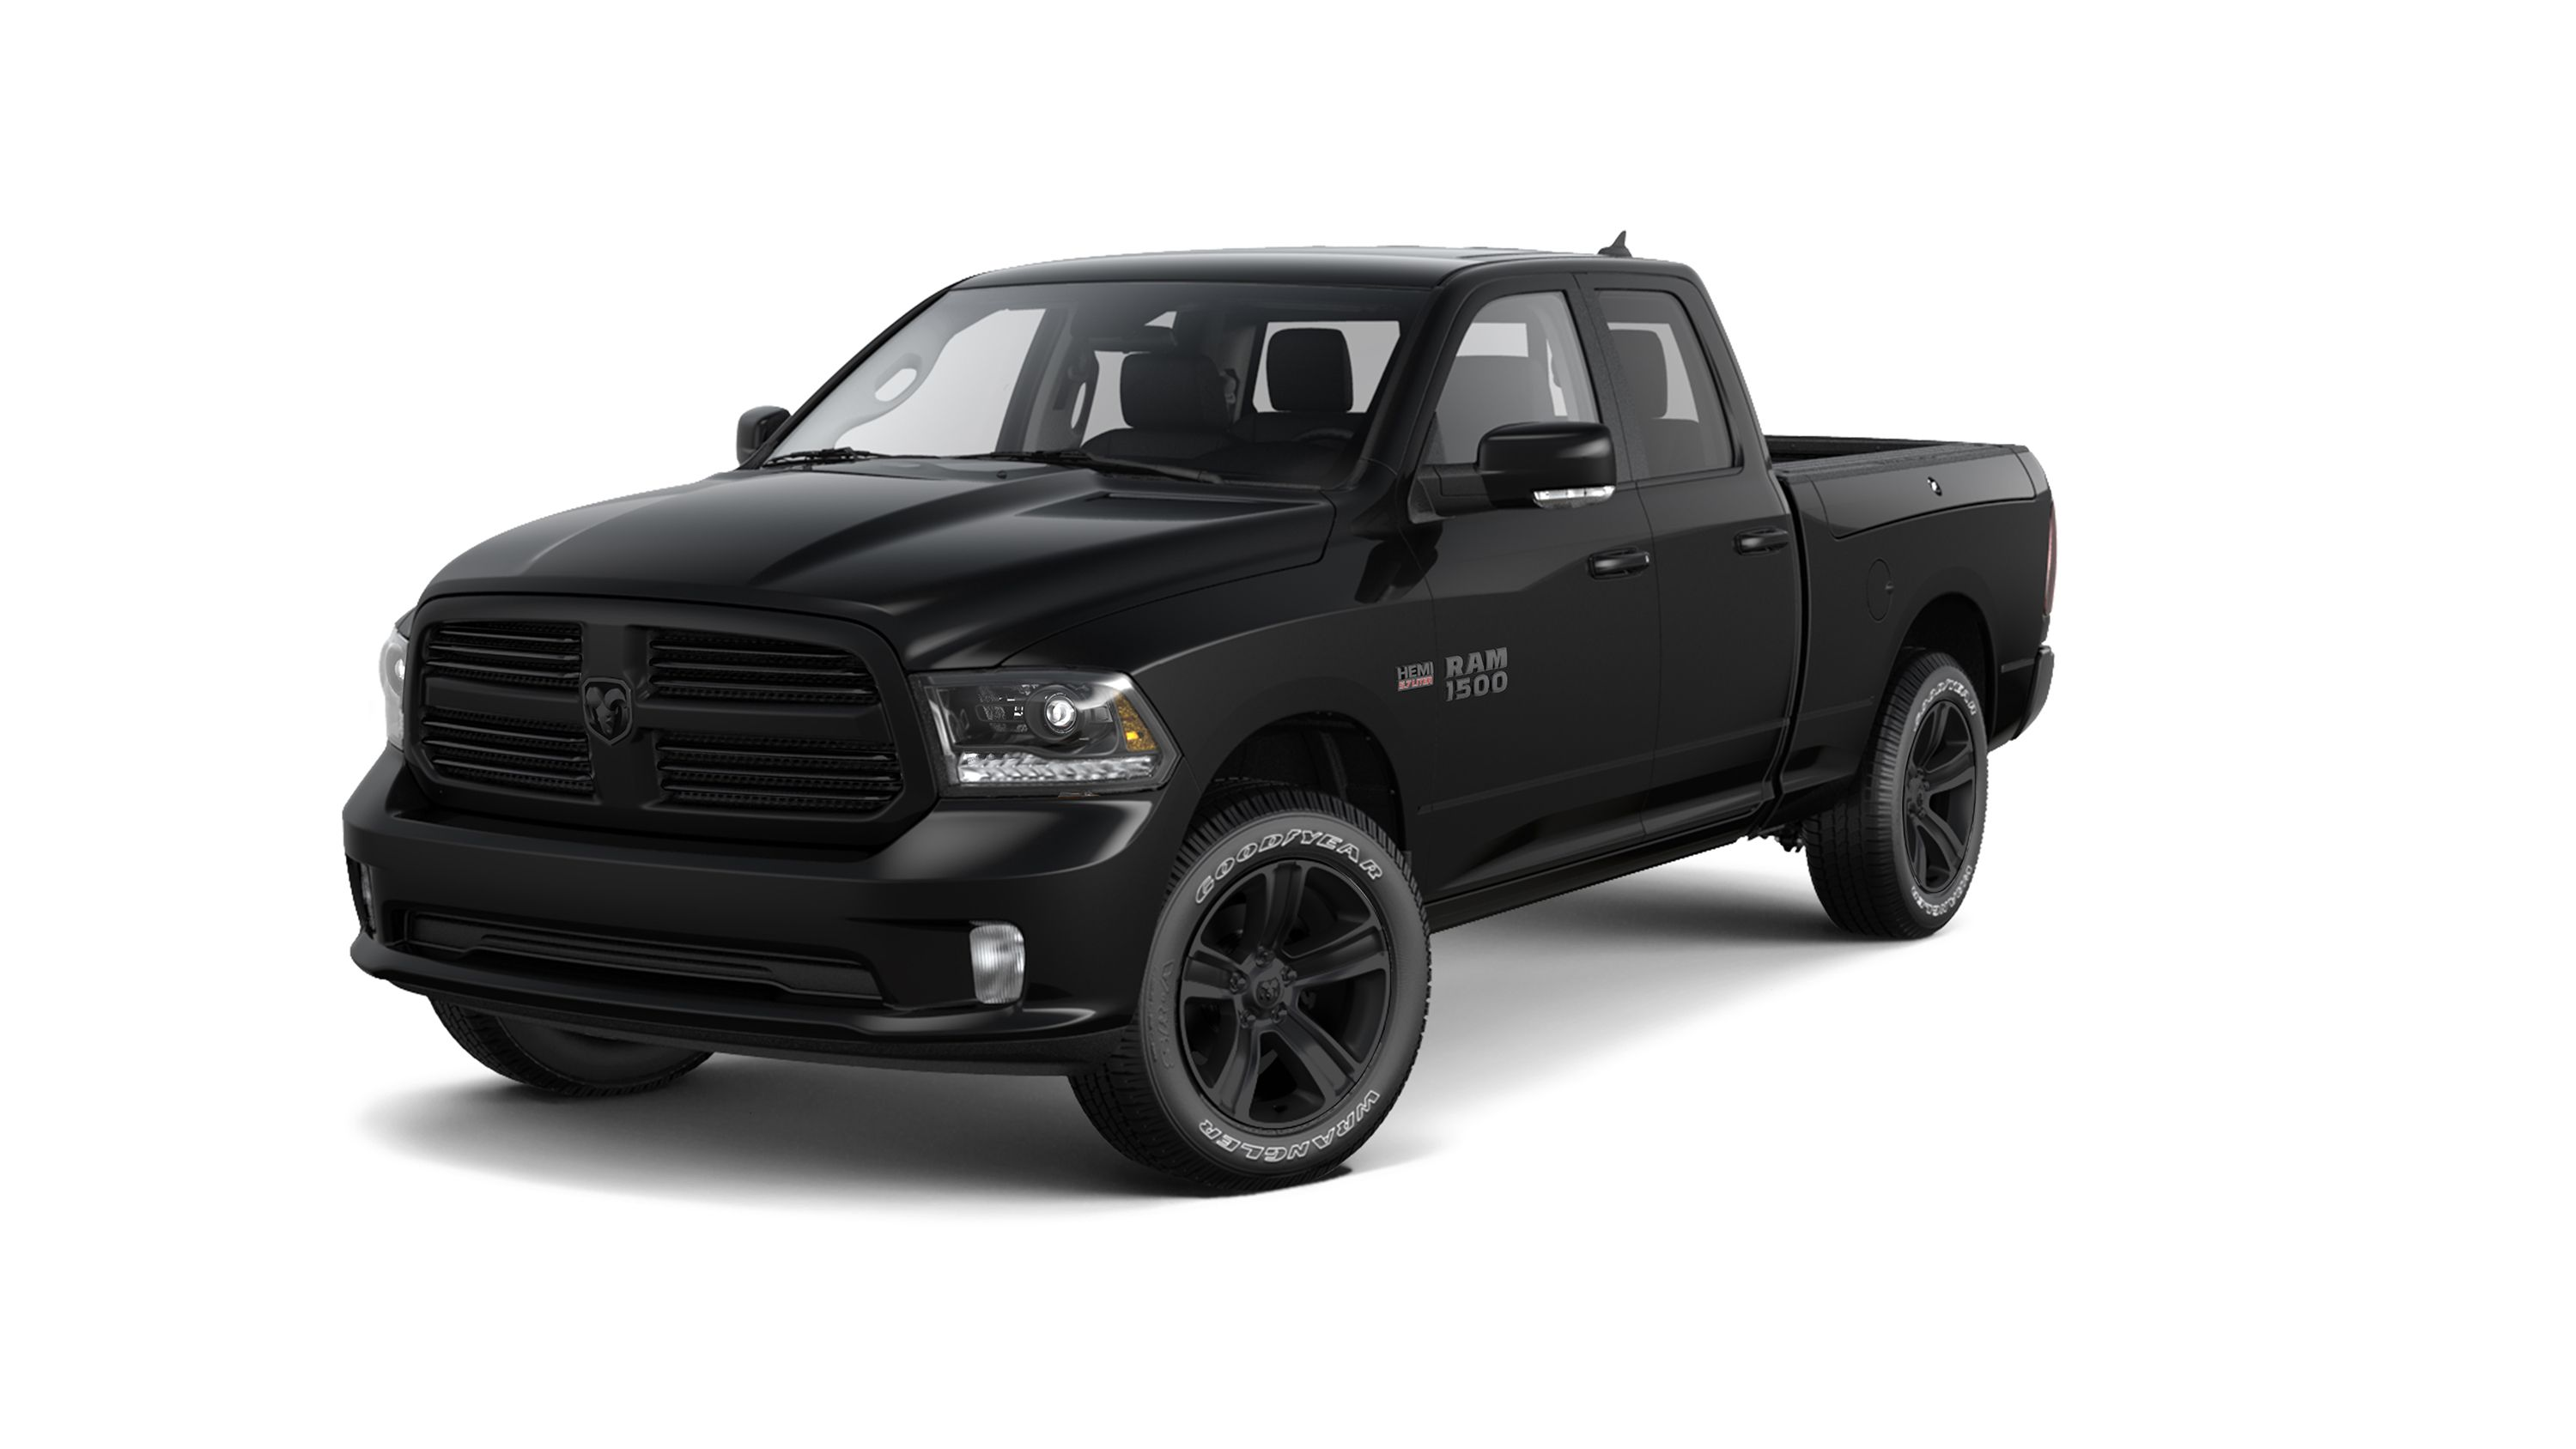 Ram 1500 Black Sport takes design cues from popular Black